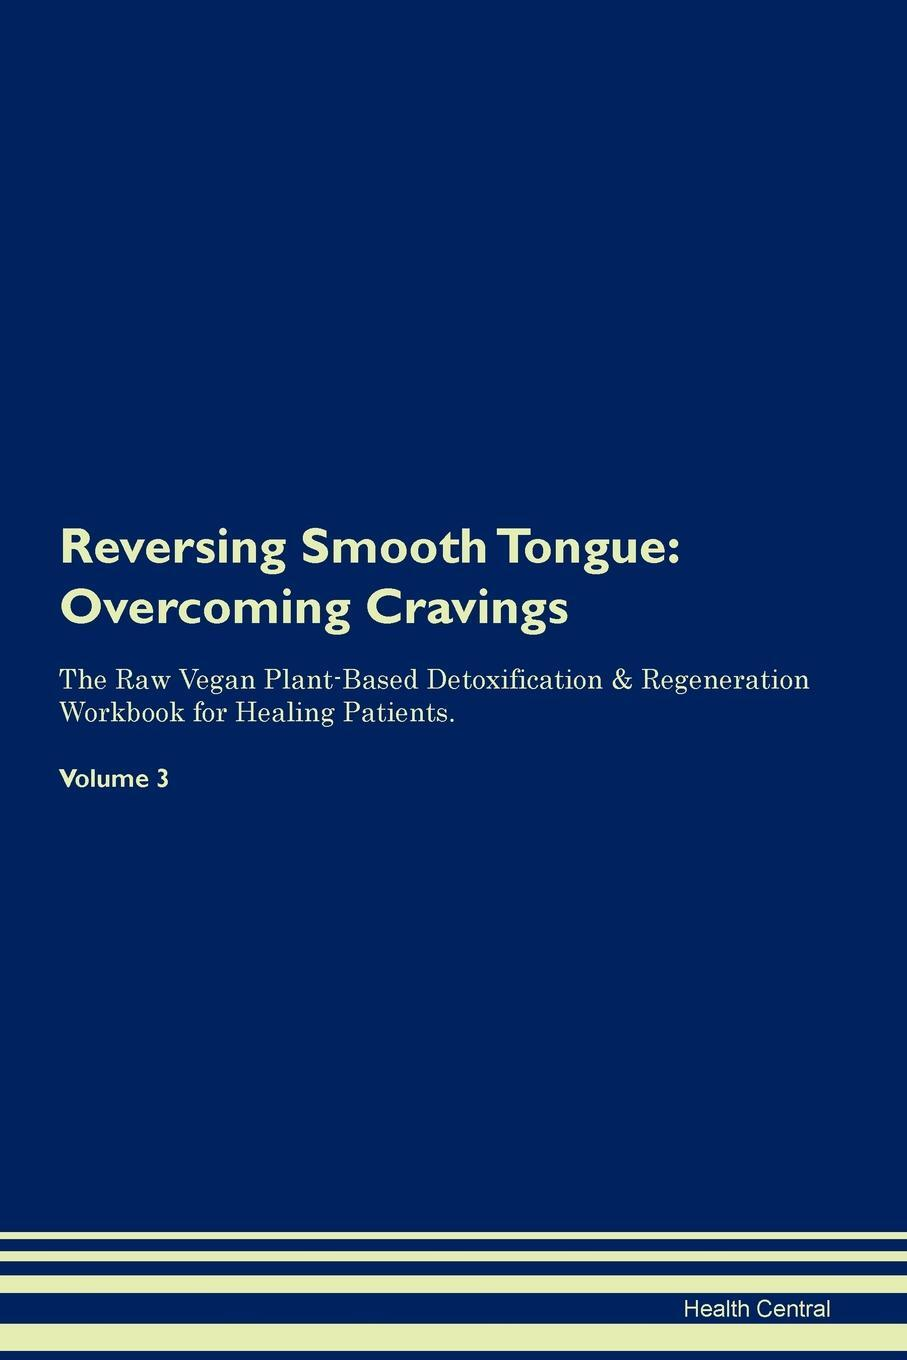 Reversing Smooth Tongue. Overcoming Cravings The Raw Vegan Plant-Based Detoxification & Regeneration Workbook for Healing Patients. Volume 3